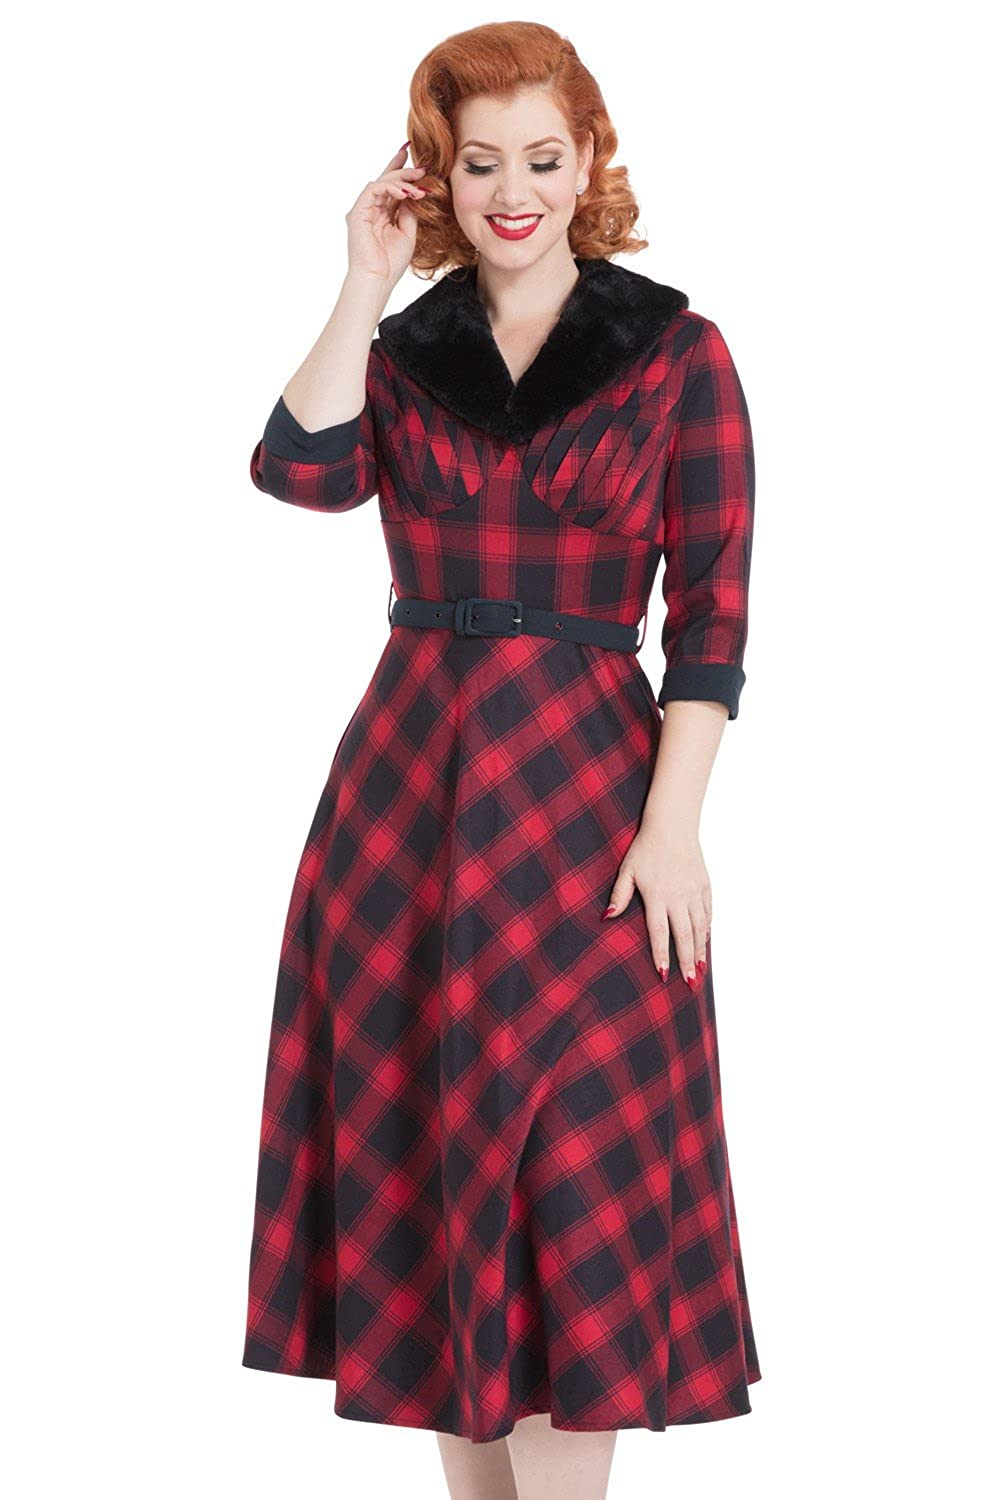 1950s Swing Dresses | 50s Swing Dress Voodoo Vixen Bettie Plaid Check Vintage Retro 50s Faux Fur Evening Party Dress $69.99 AT vintagedancer.com